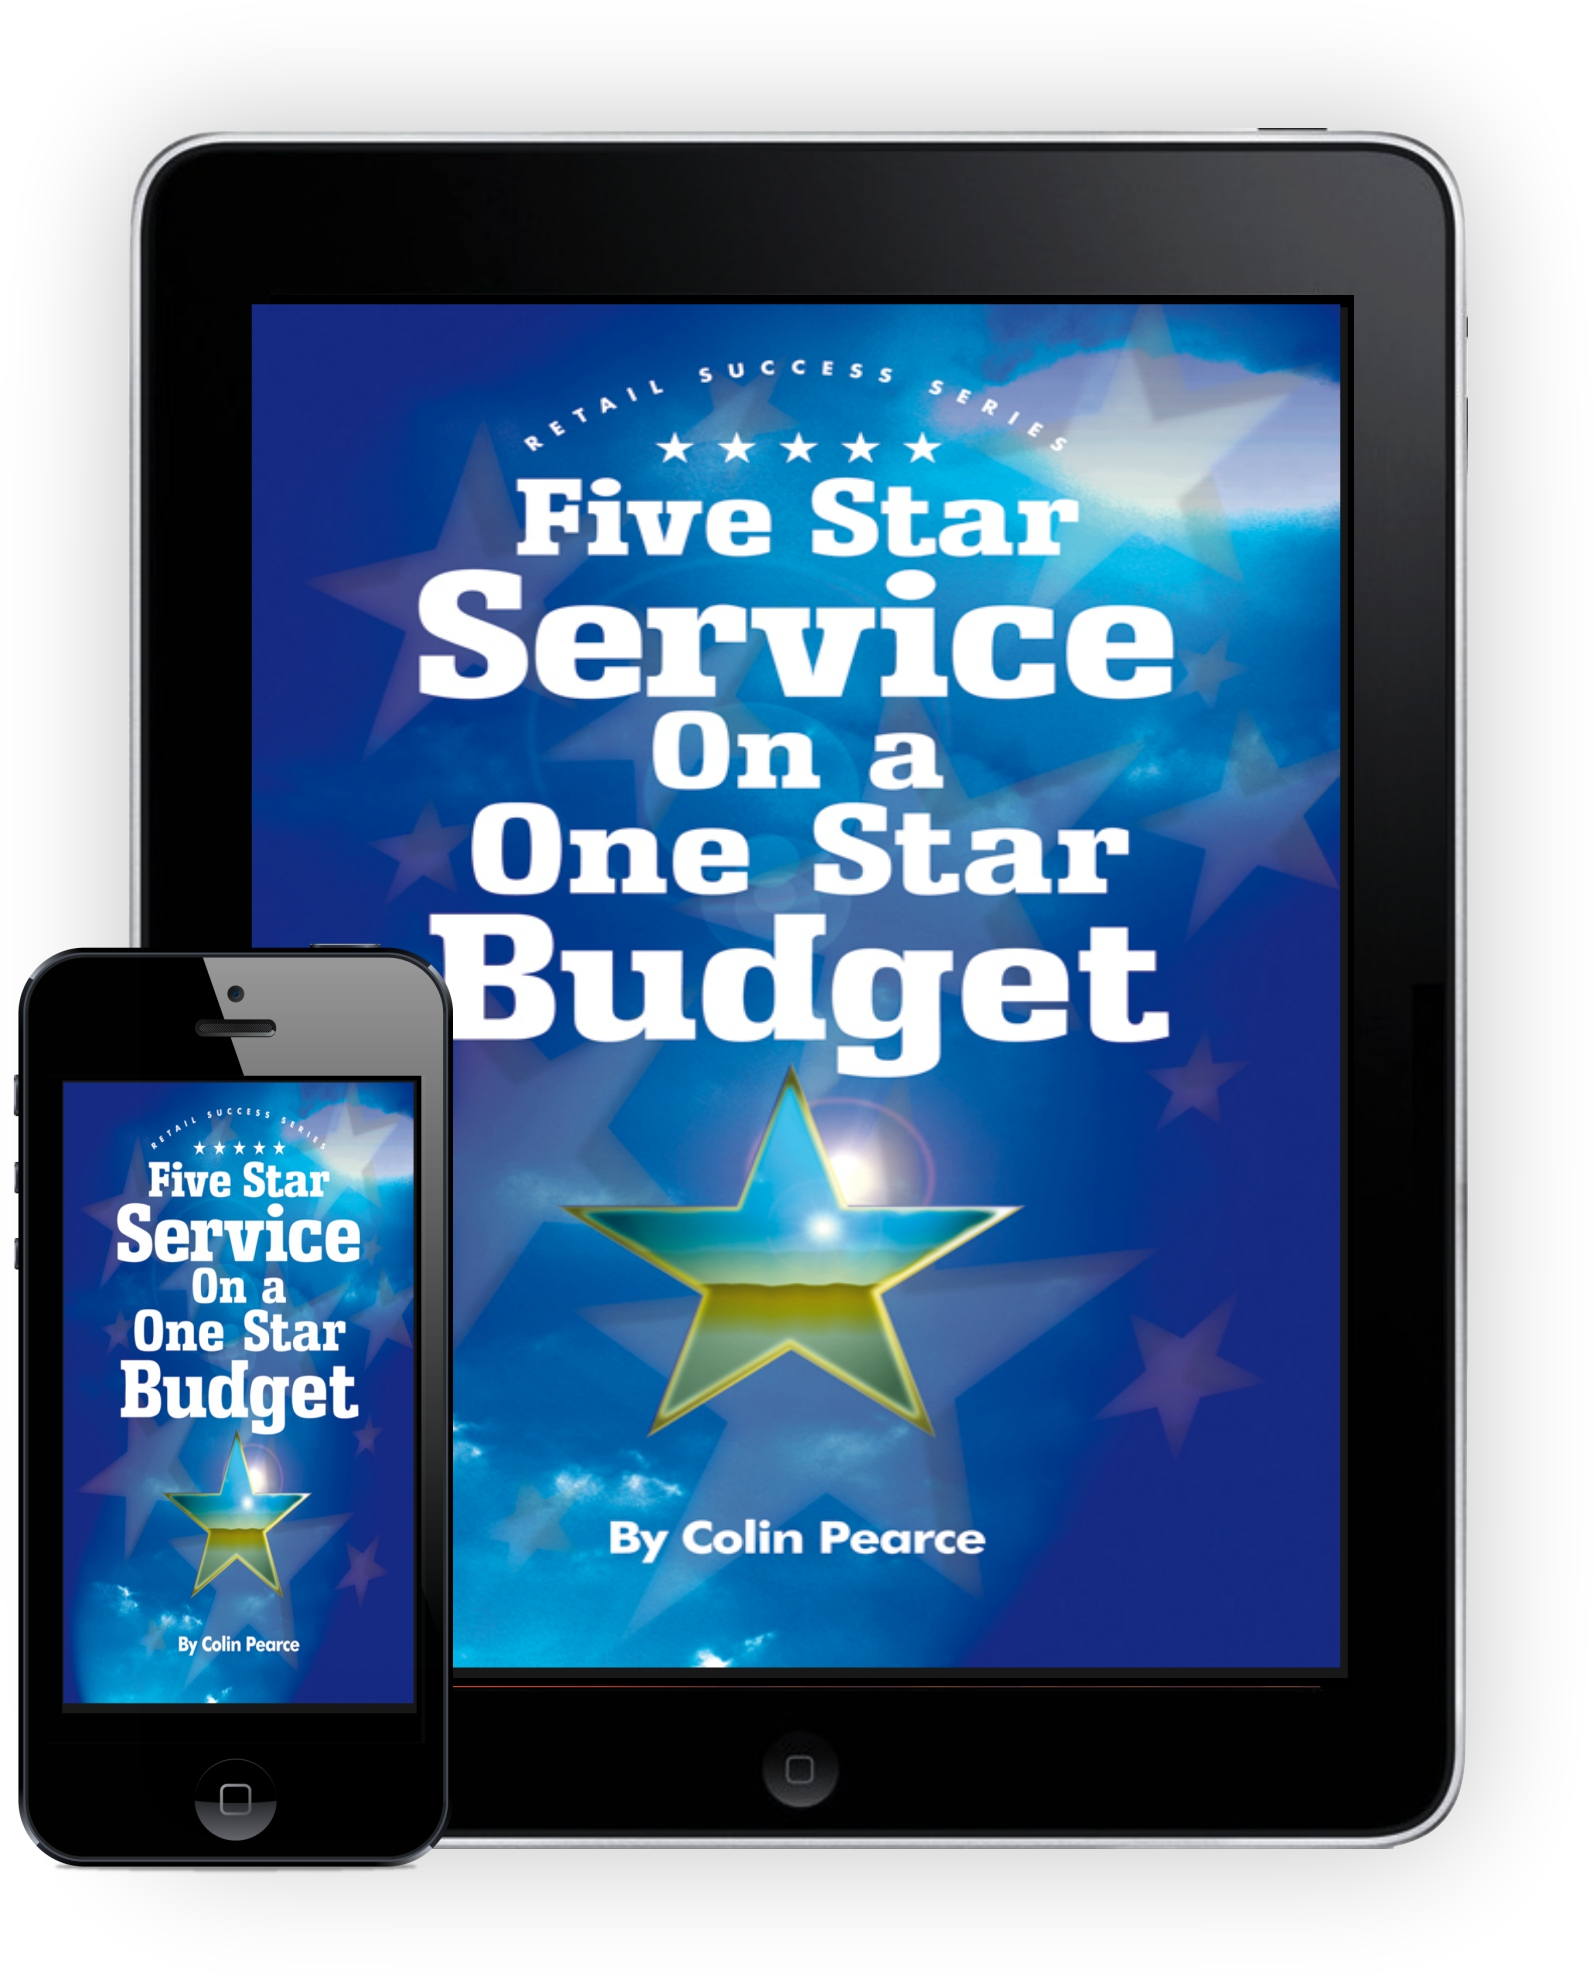 Five Service On a One Star Budget